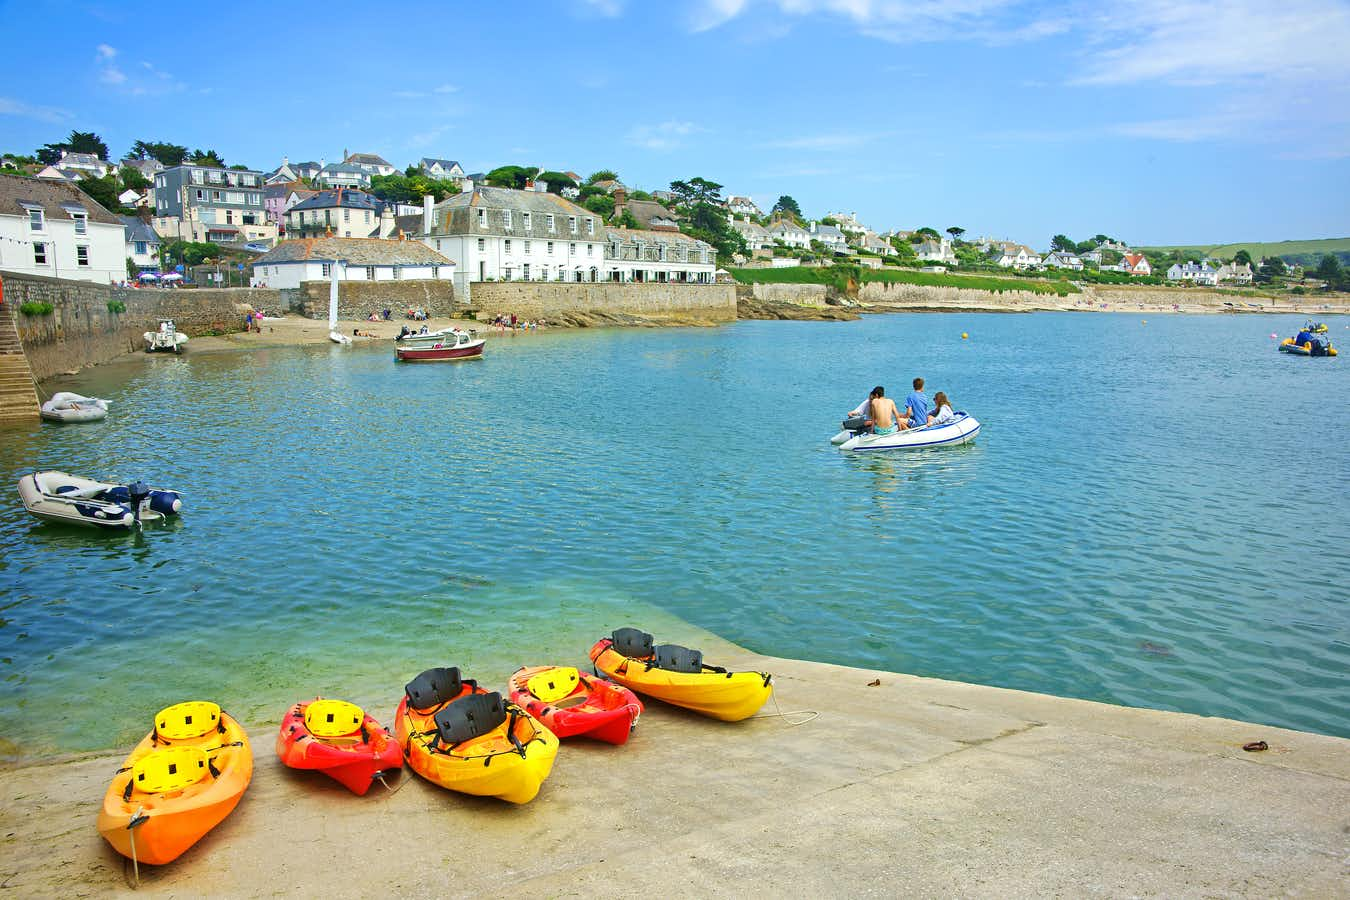 St. Mawes and Gardens of Cornwall